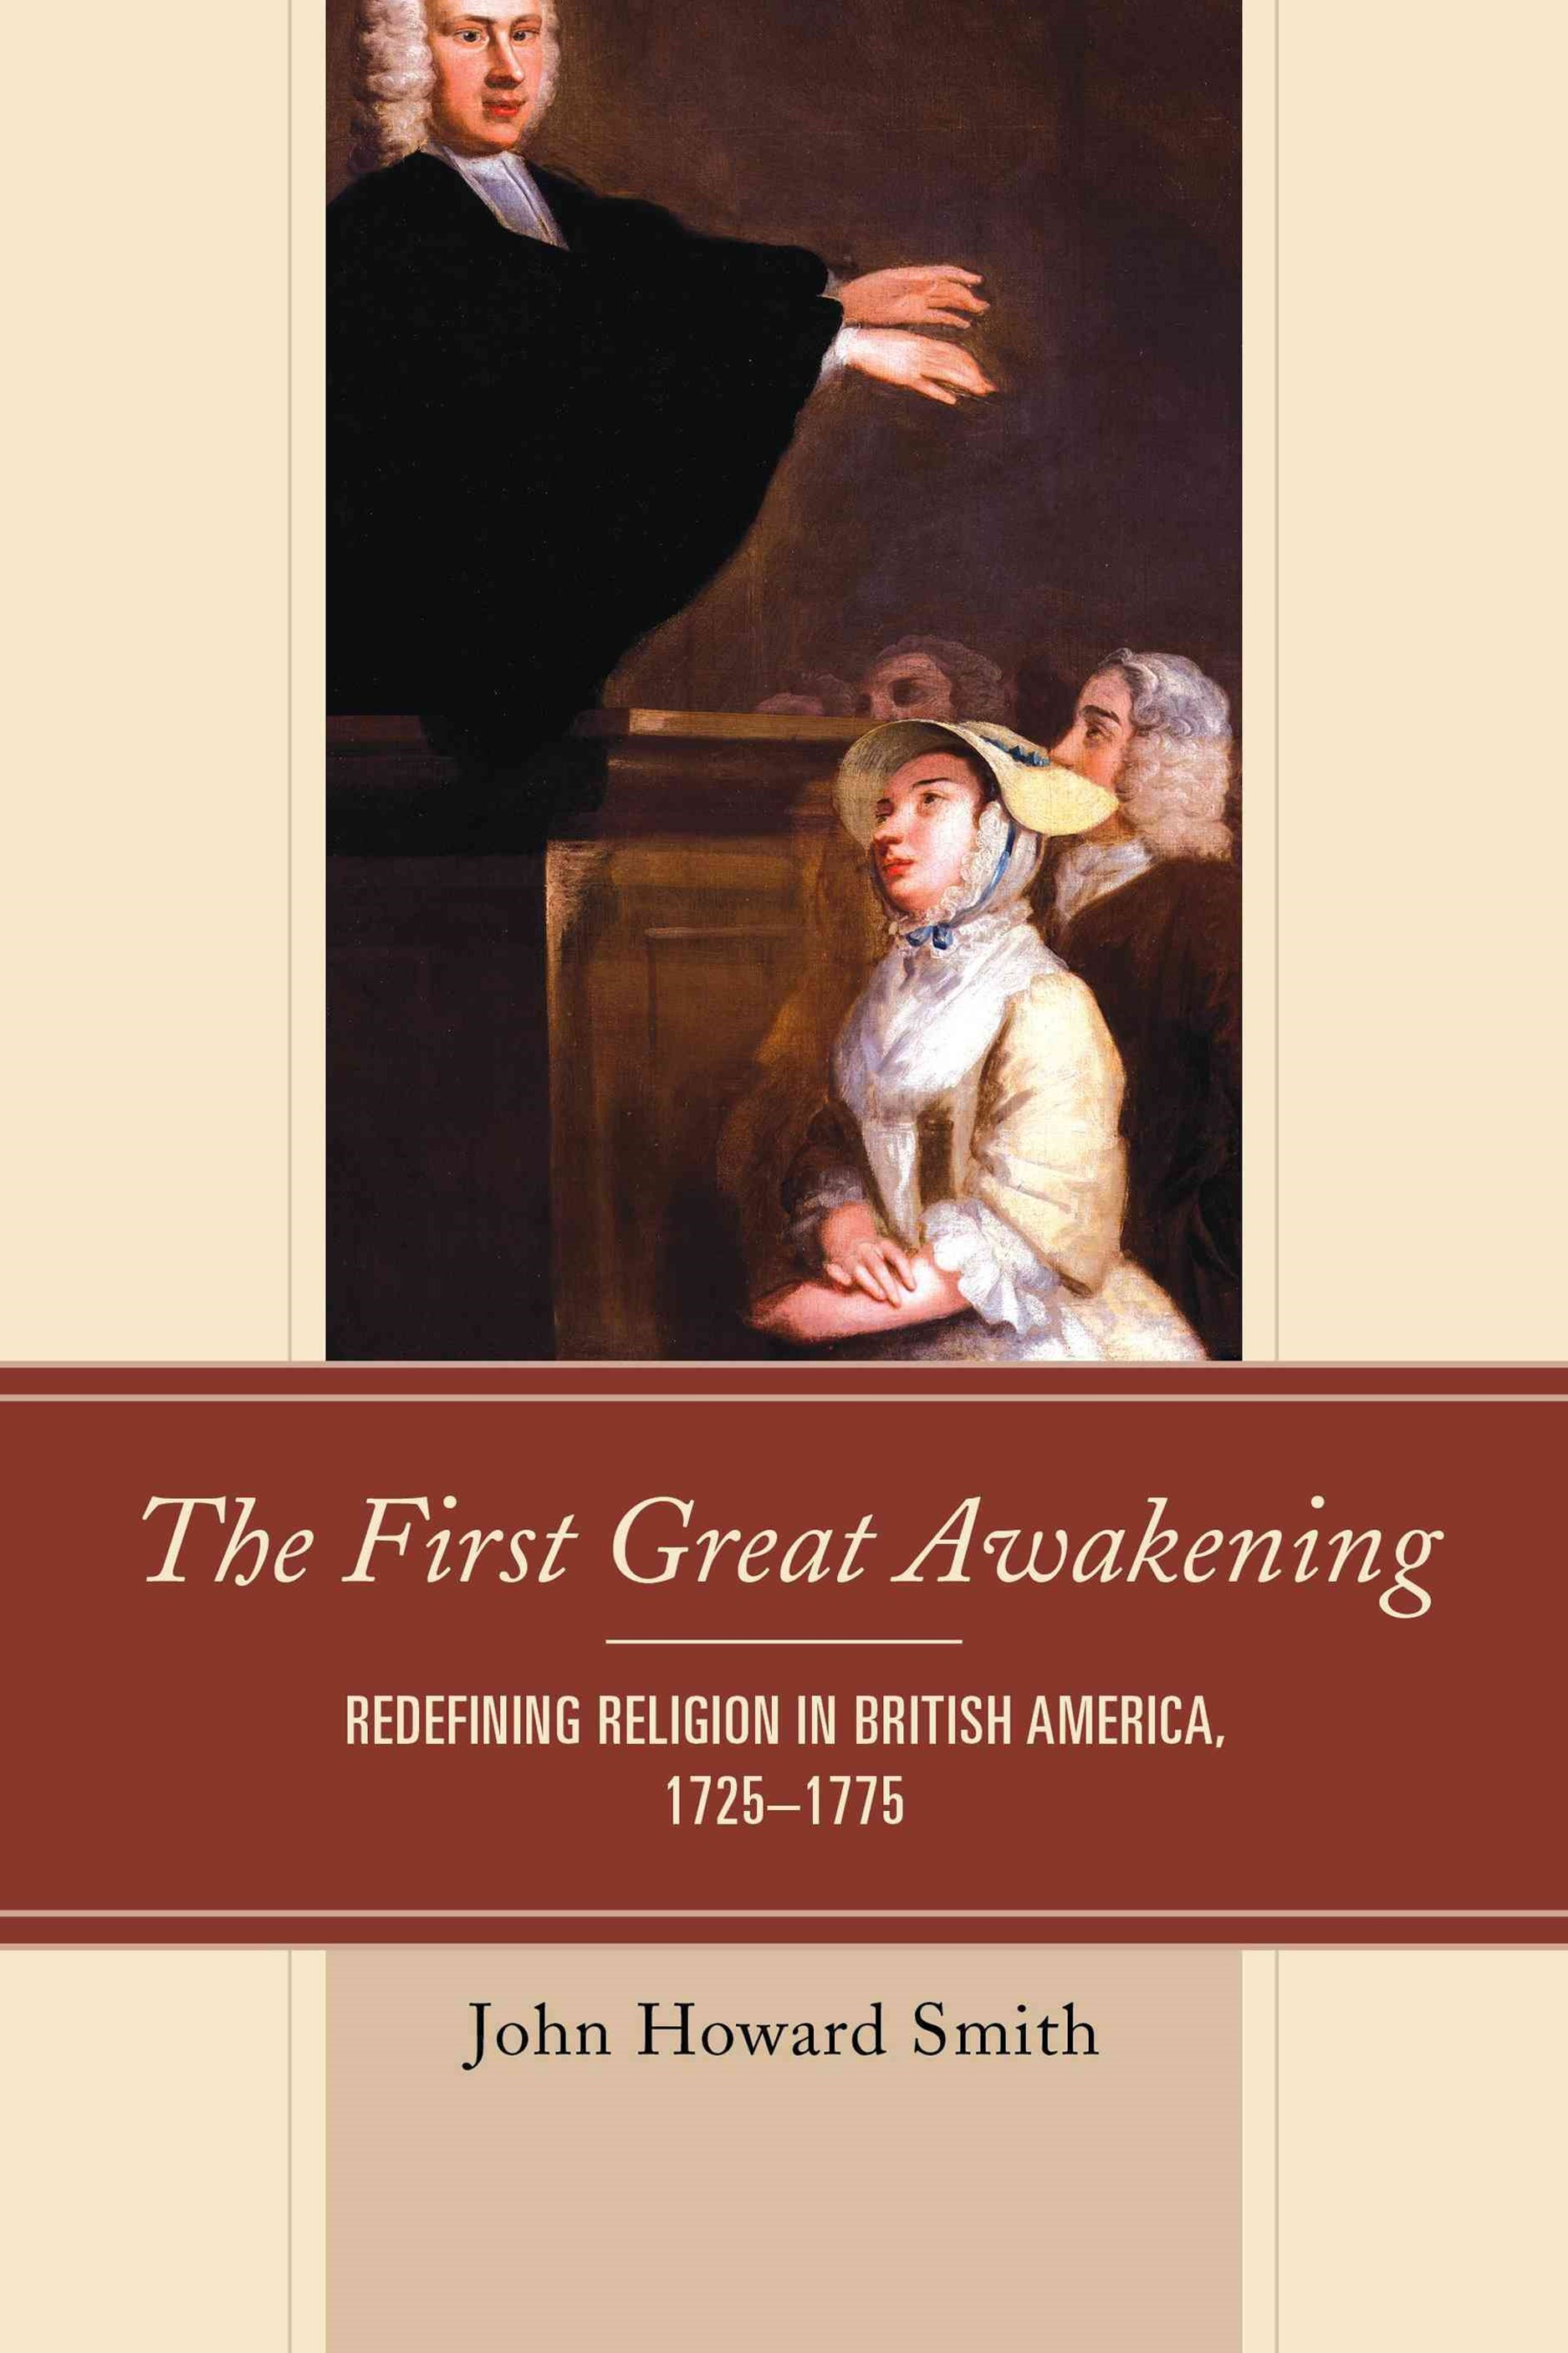 The First Great Awakening